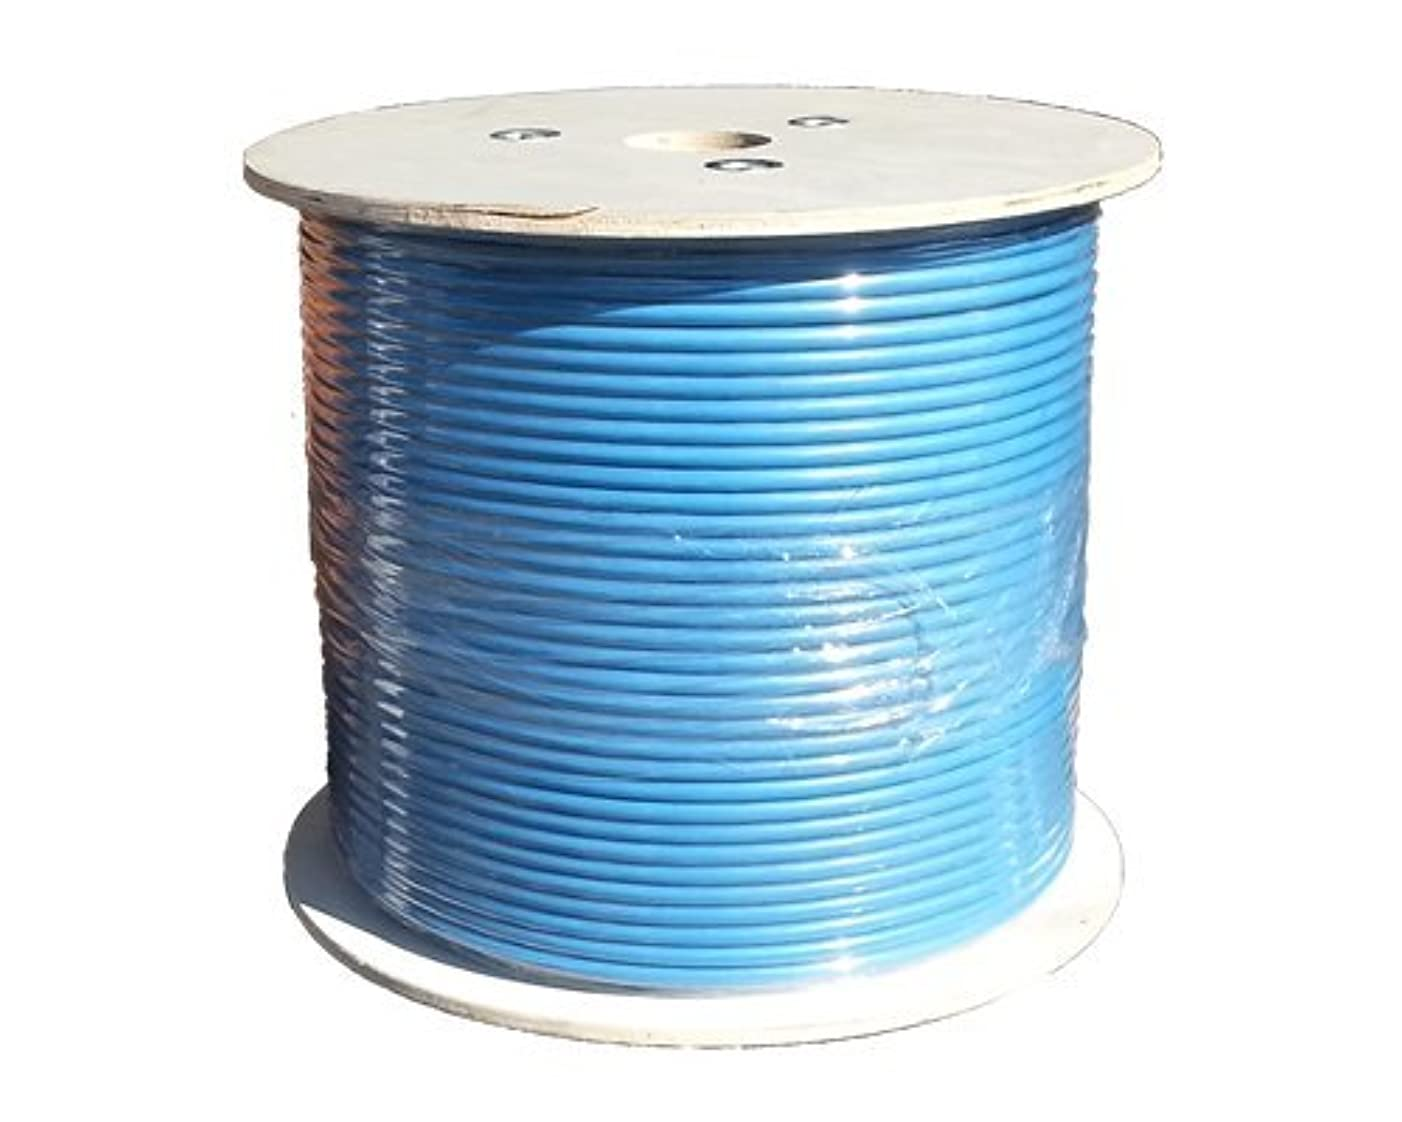 Sunnytech CAT7A 1000ft S-FTP CMR Riser, 1500MHz 10GBase-T Data, Solid 22AWG Installation Cable, Bulk Pack(w/20 pack Cat7A plug and Boot Cap Free)